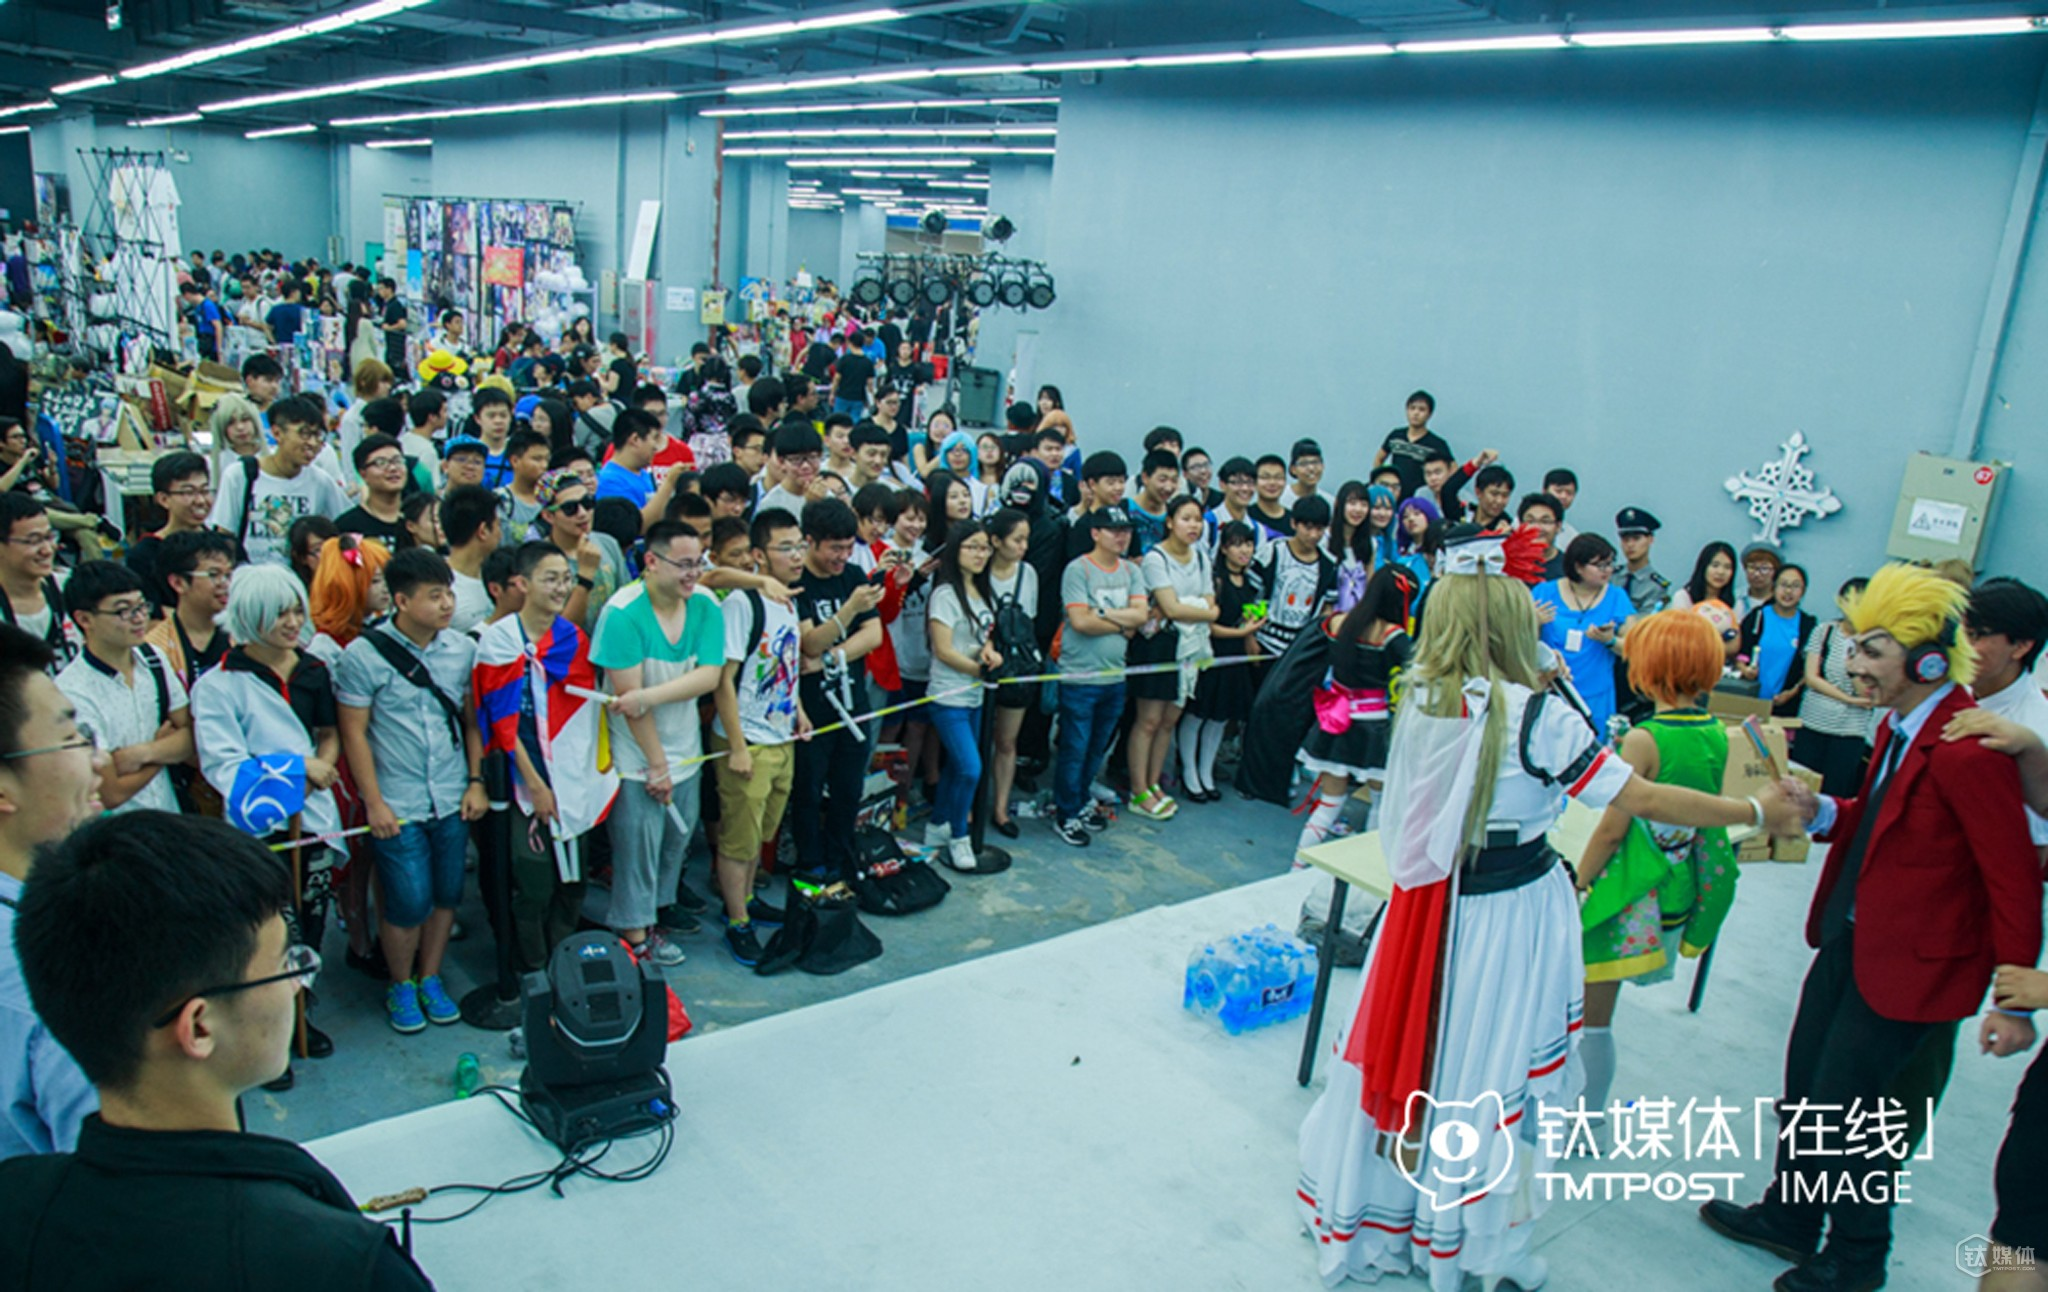 The audience were watching a cosplay show in the first Beijing Dream Comic Show held on June, 10th, 2016. The show attracted over 5,000 people to buy tickets, among whom students born after 1990 or 1995 took up 90%. These bunch people were obviously willing to pay for their interest in ACG.